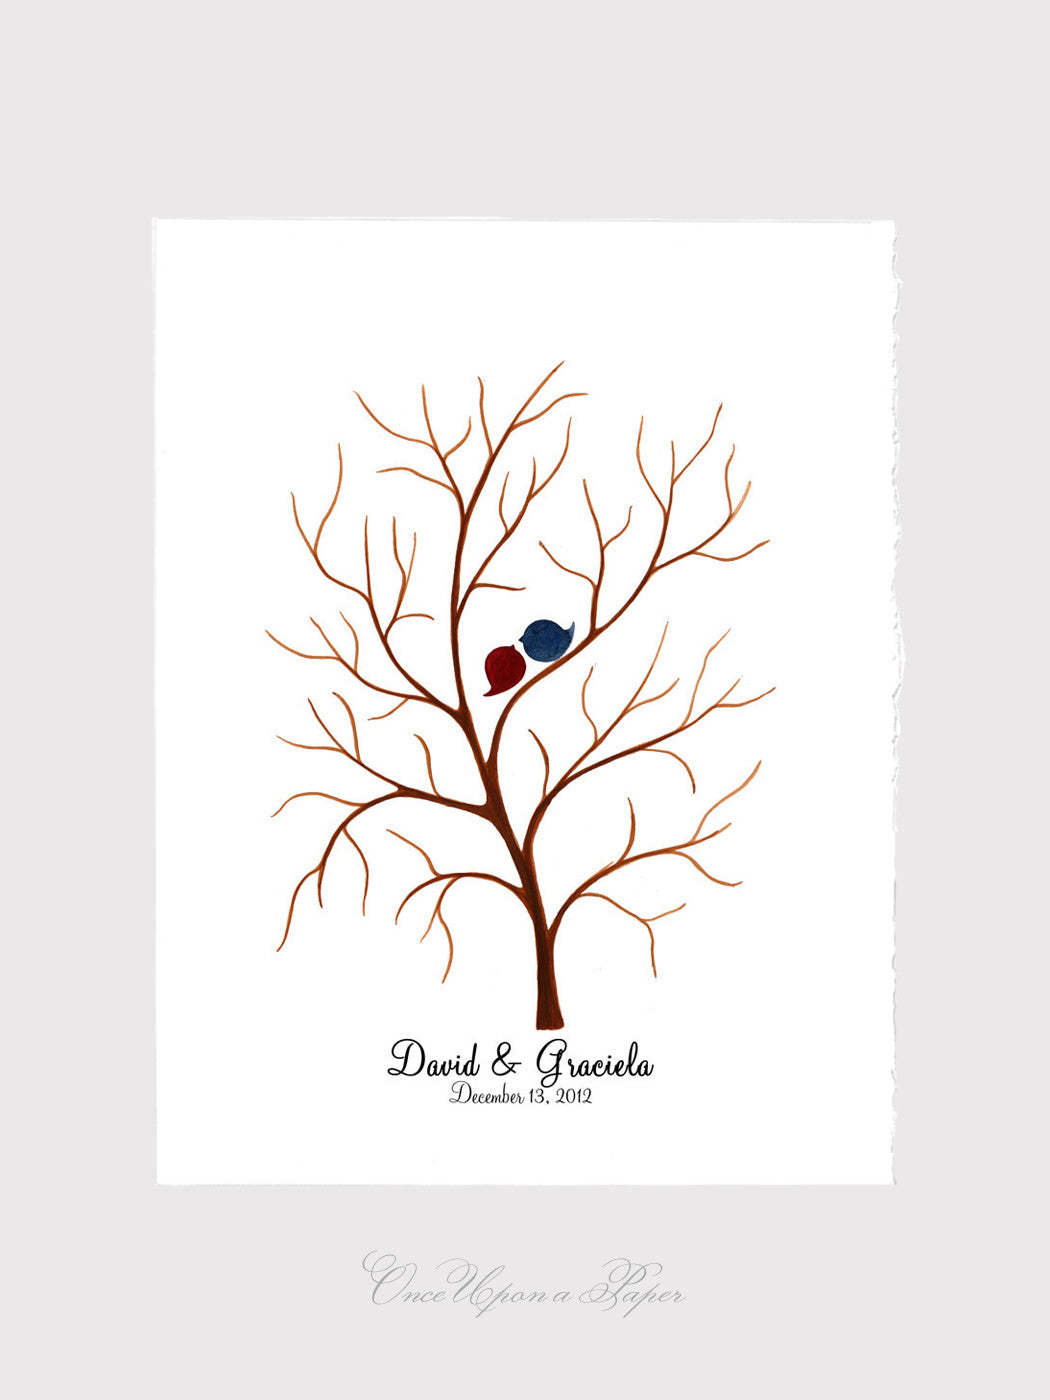 Wedding Guest Book Tree Thumbprint Custom - 100 - 150 fingerprints signatures - fingerprint ready wedding guestbook, tree guest book